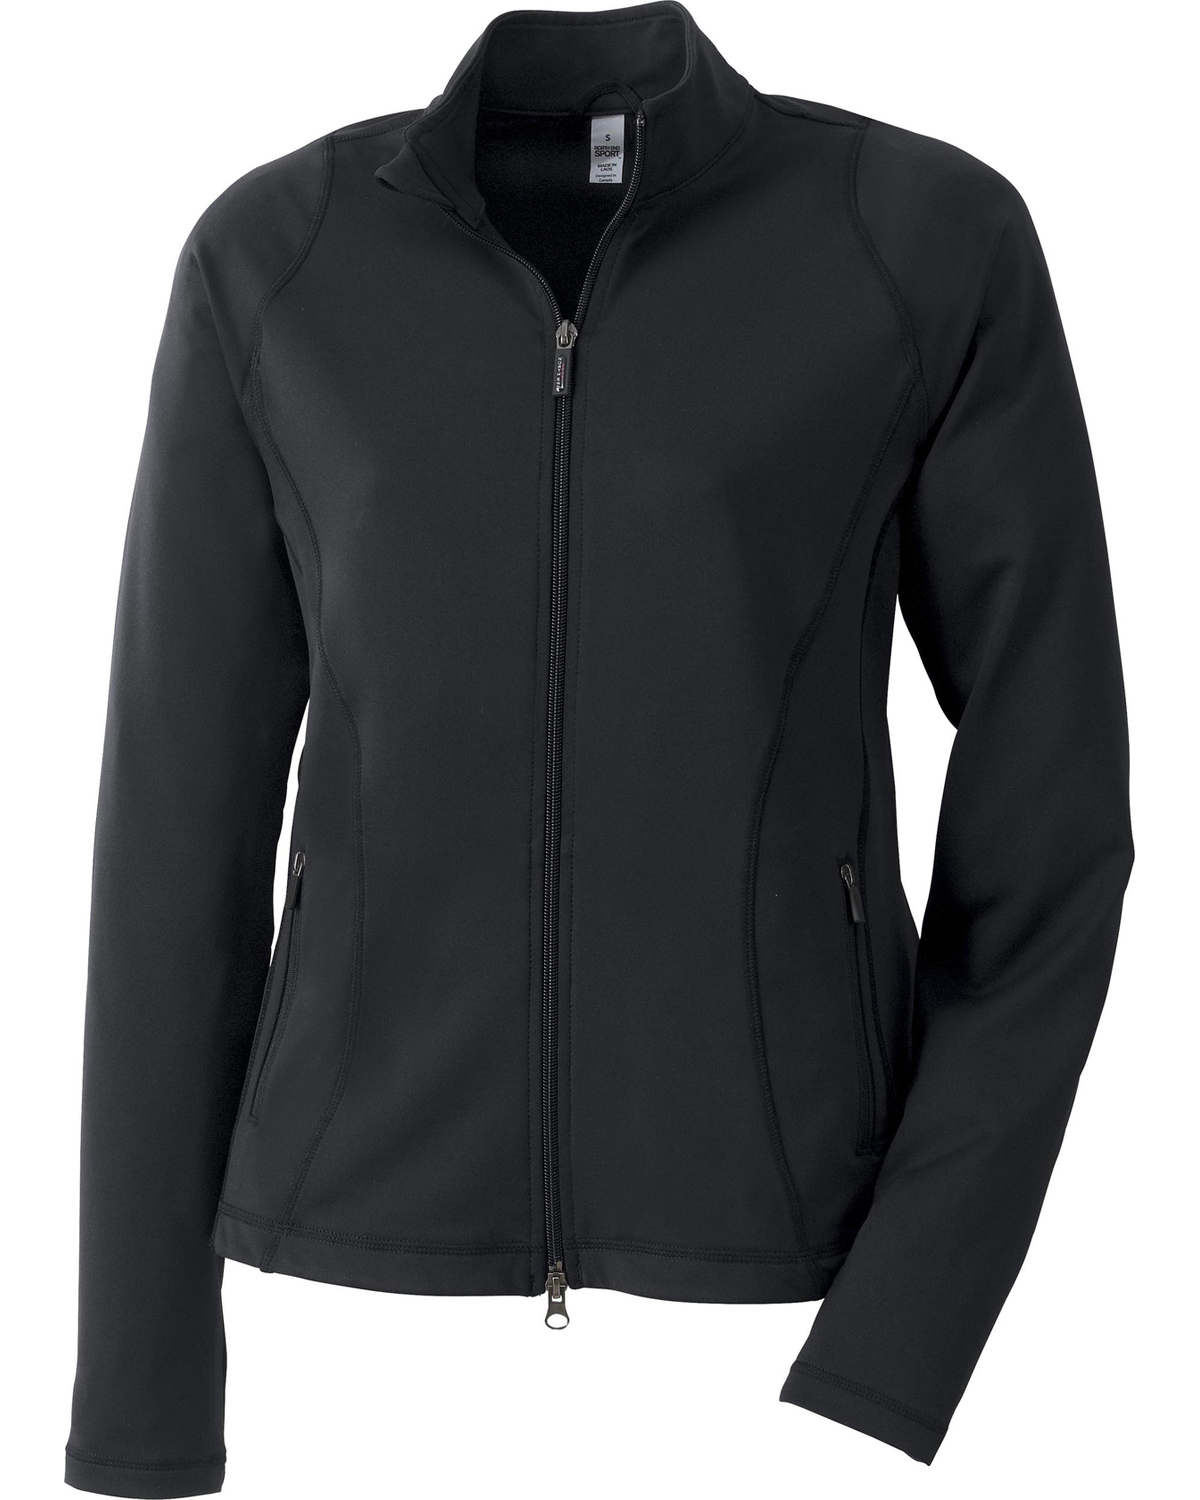 ash-city-north-end-sport-red-ladies-lifestyle-jacket-black